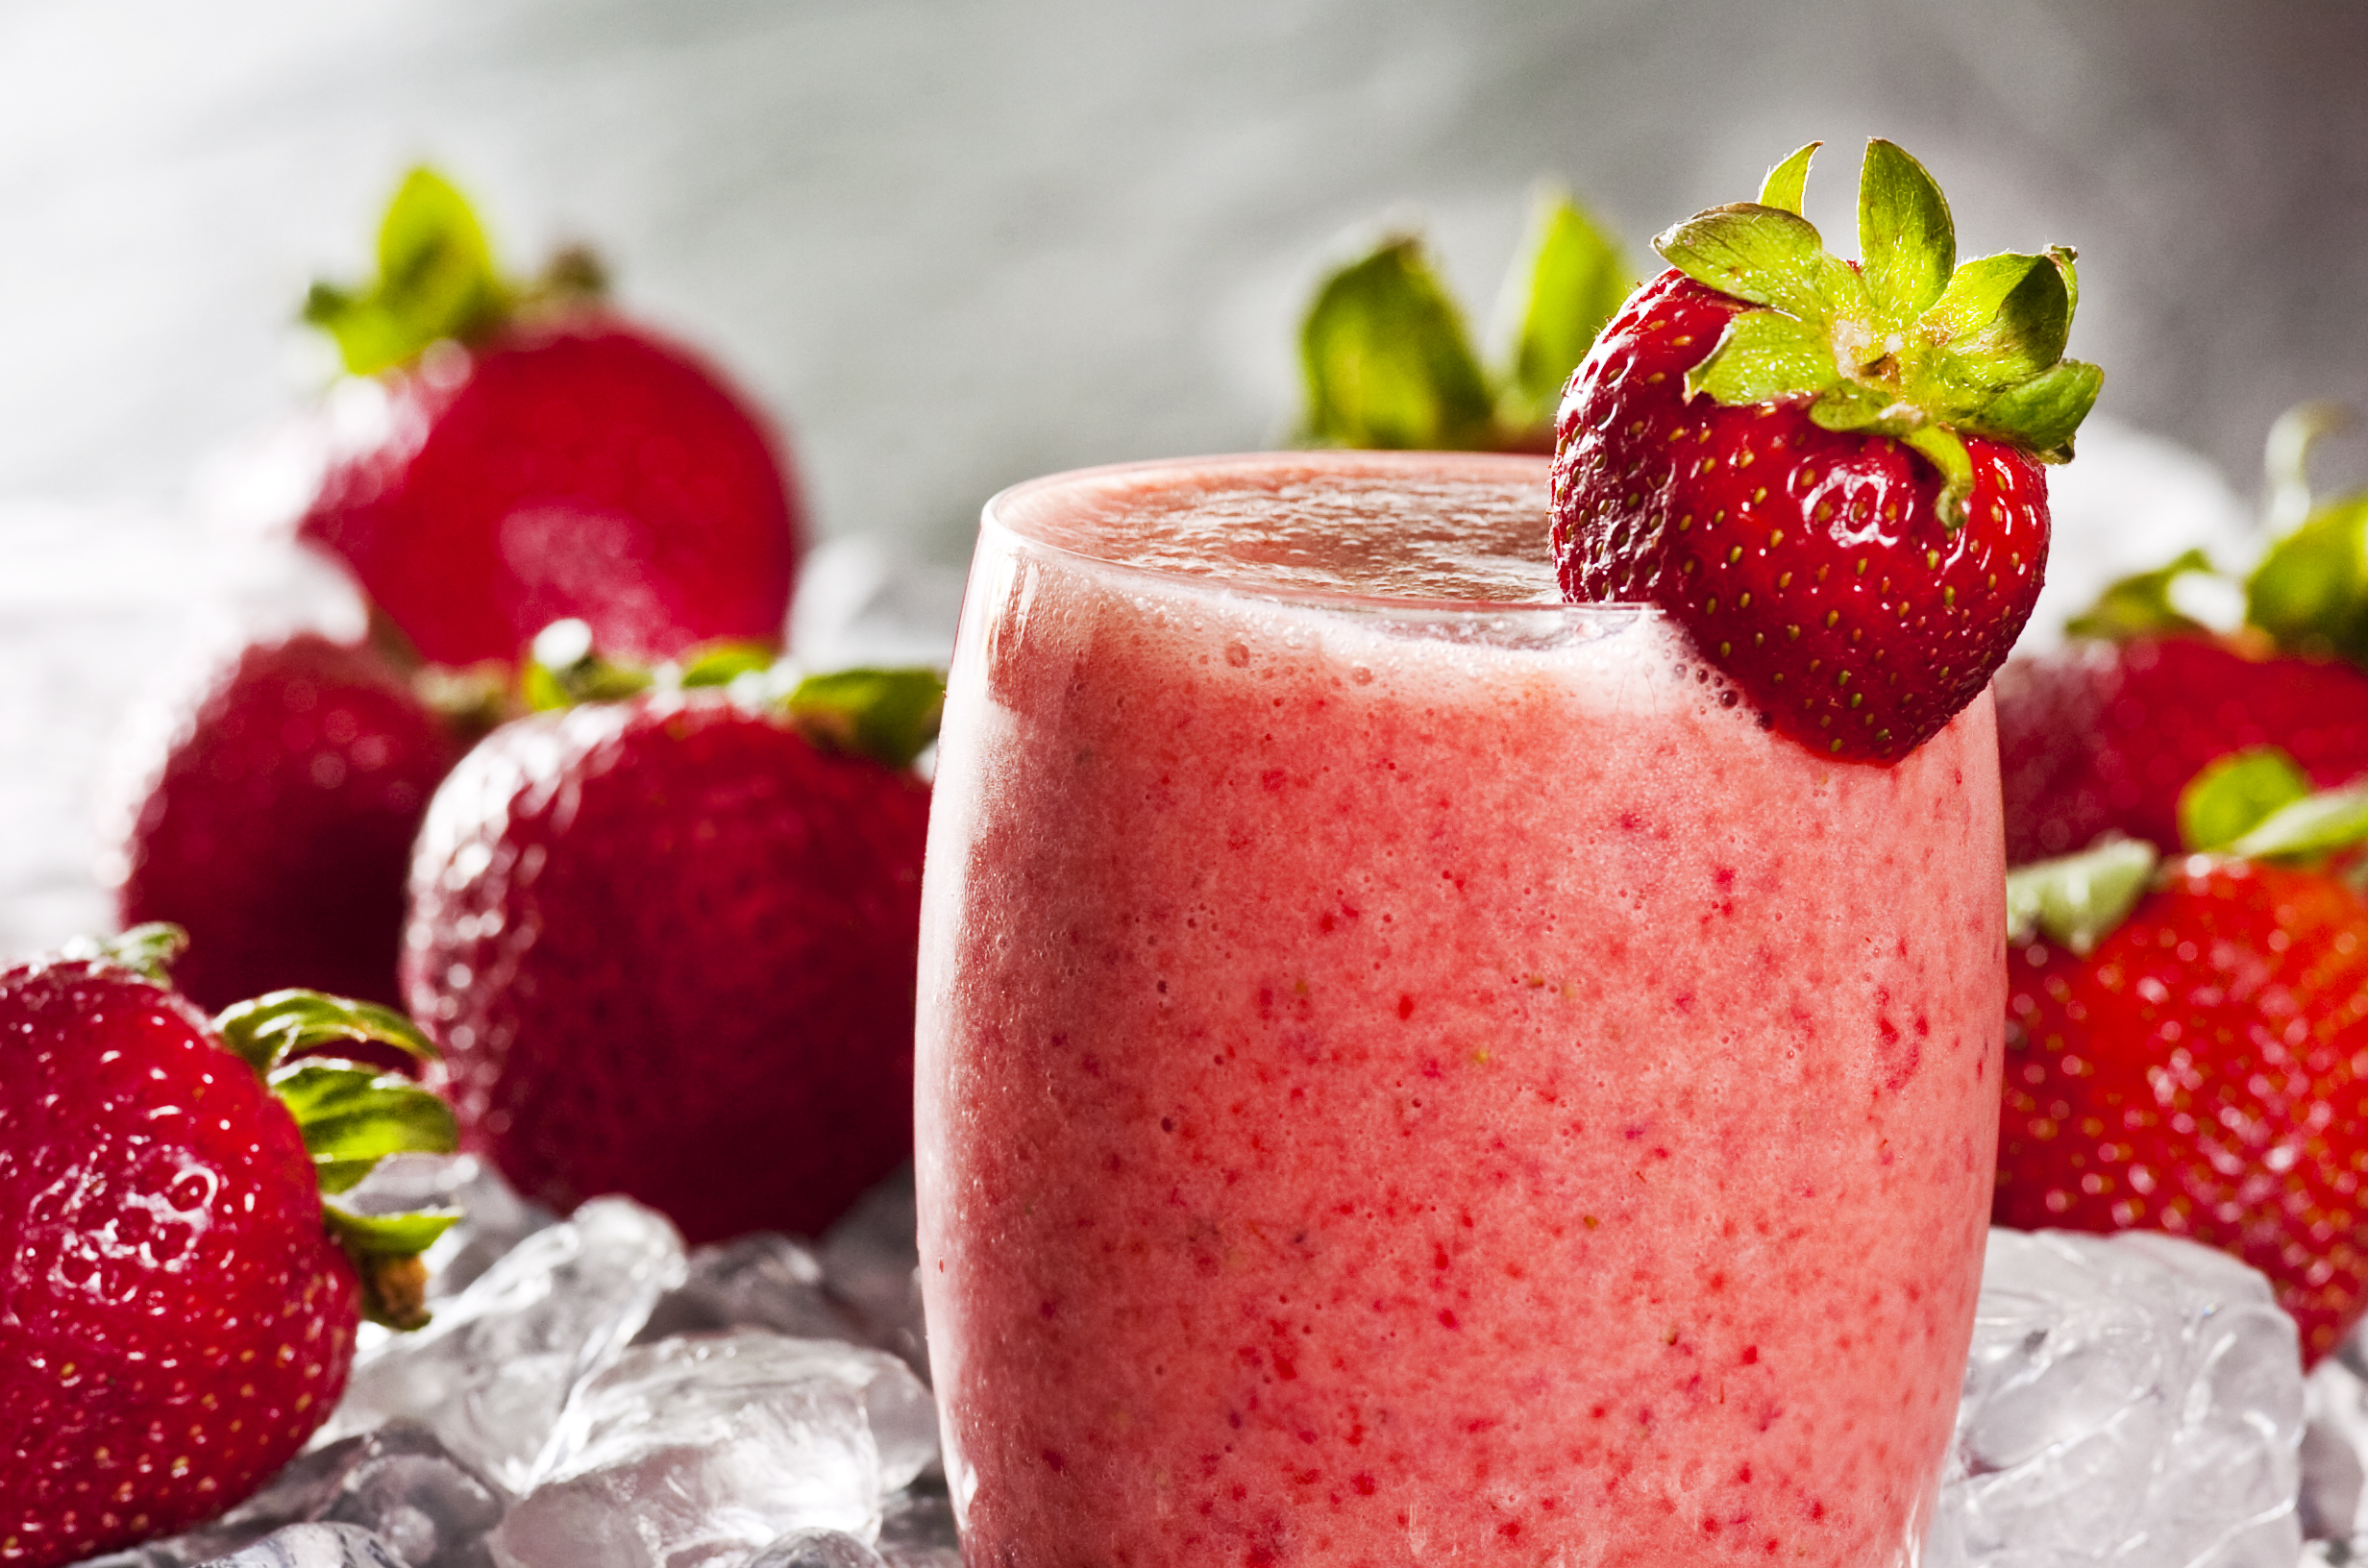 Strawberry smoothie- Smoothie tal-frawli